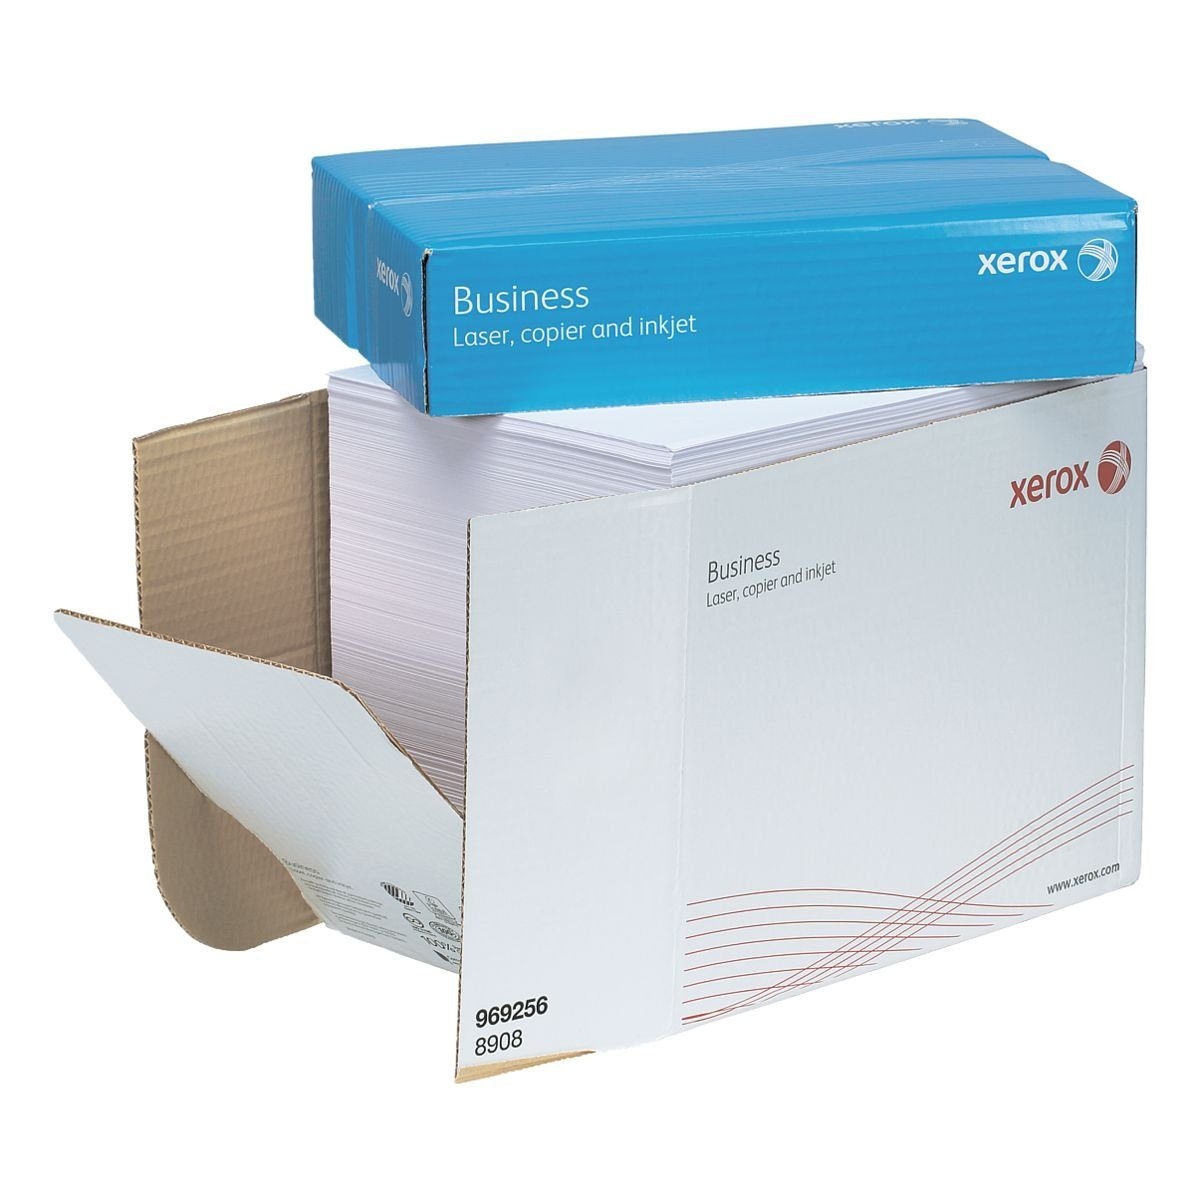 Xerox Öko-Box Multifunktionales Druckerpapier »Business«